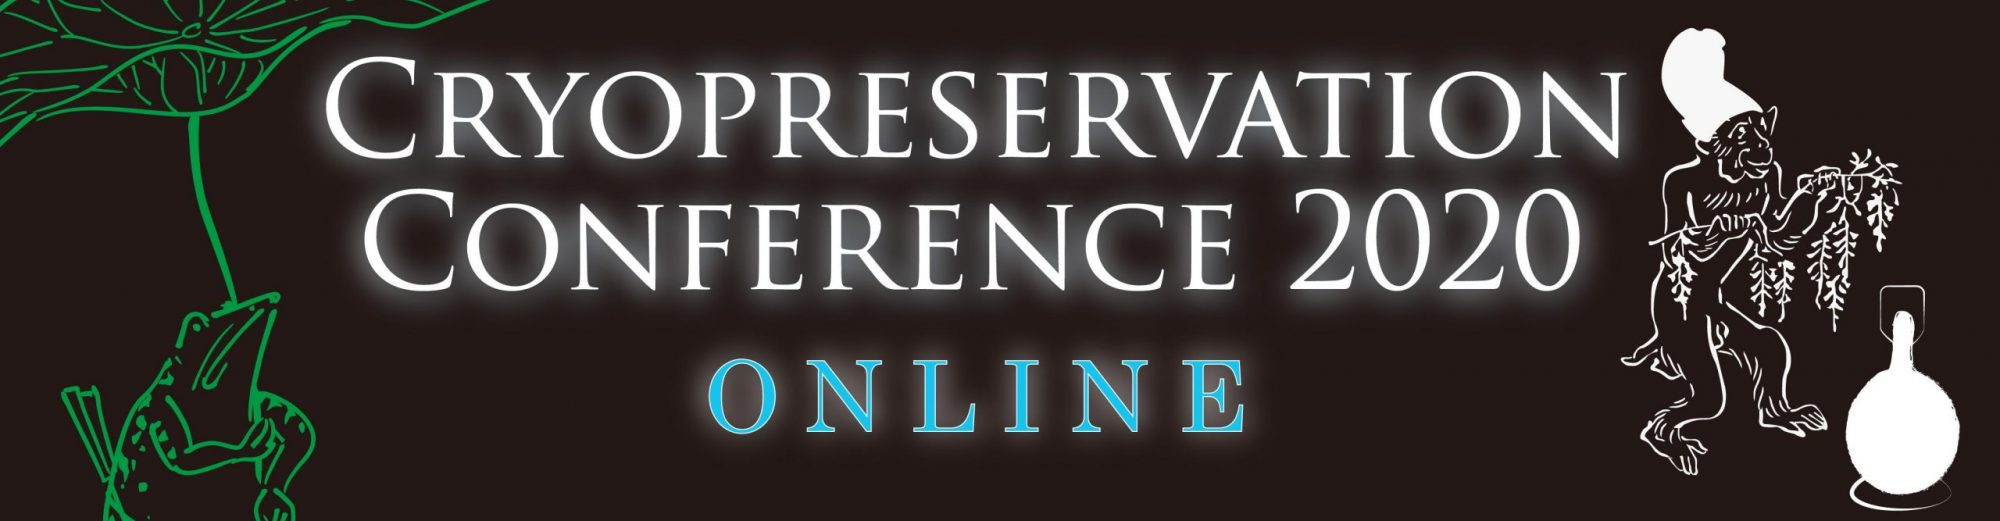 Cryopreservation Conference 2020